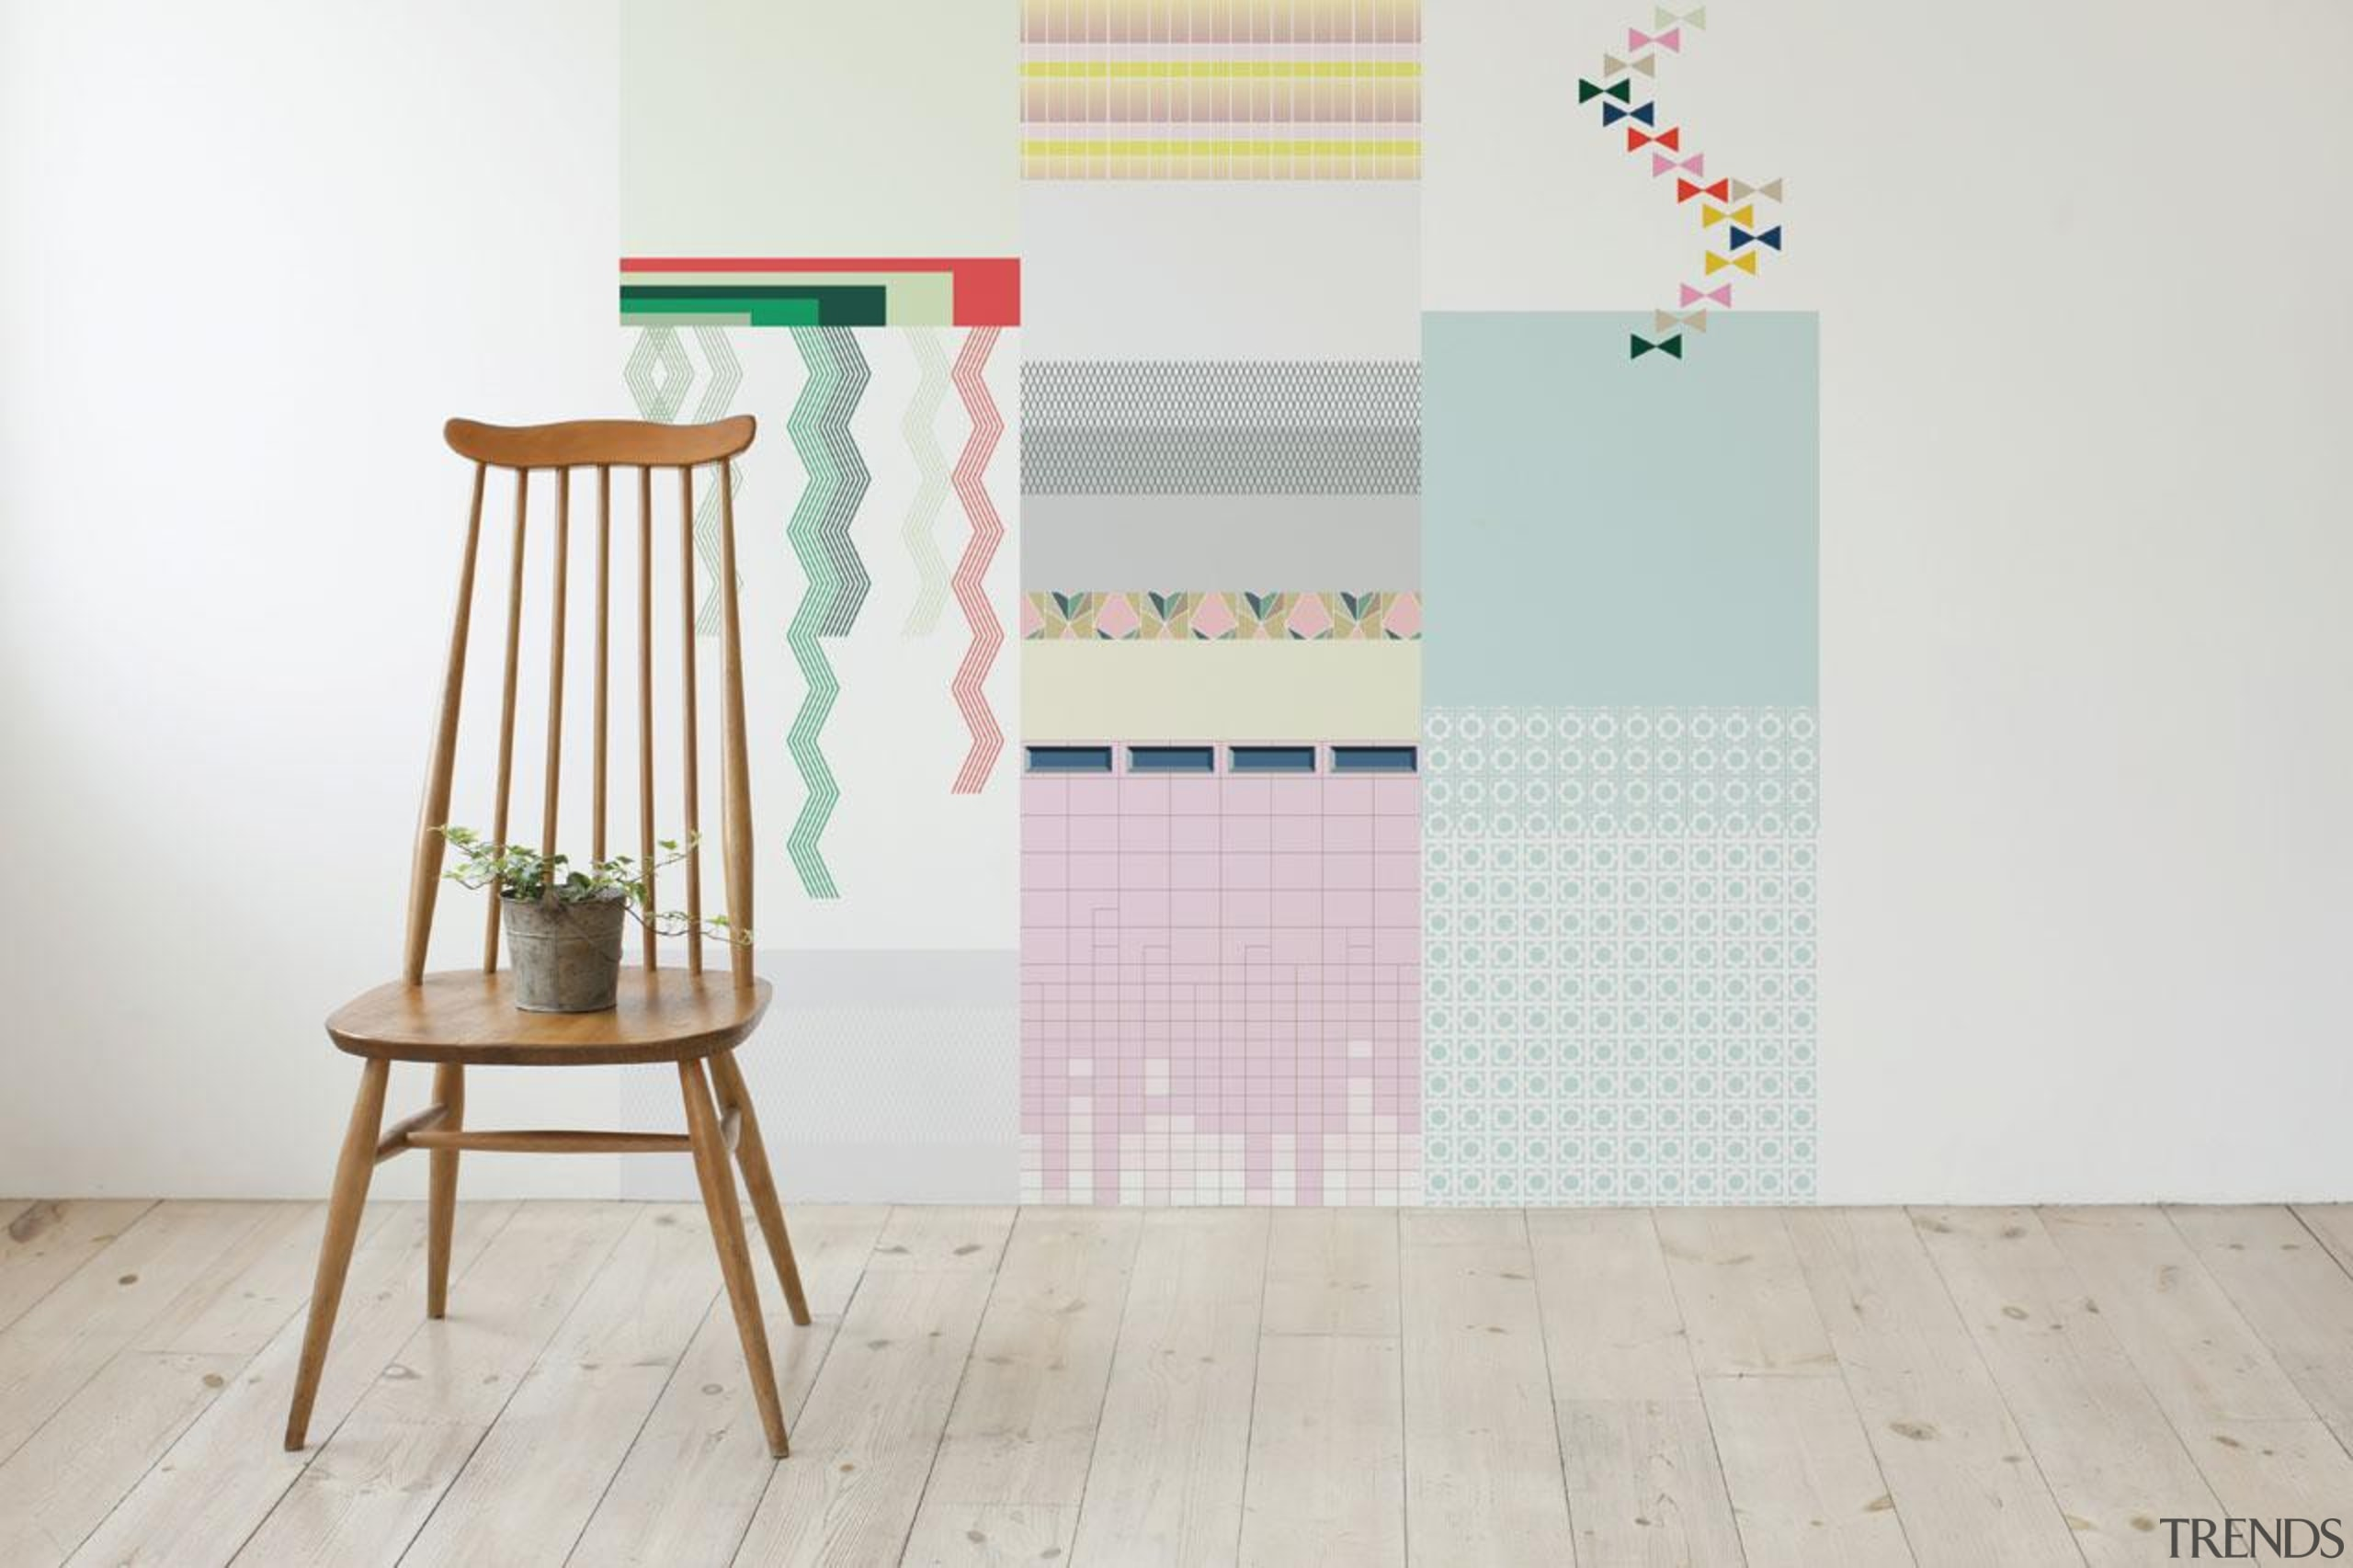 One of the challenges when putting up wallpaper chair, floor, flooring, furniture, product, product design, shelf, table, wood, white, gray